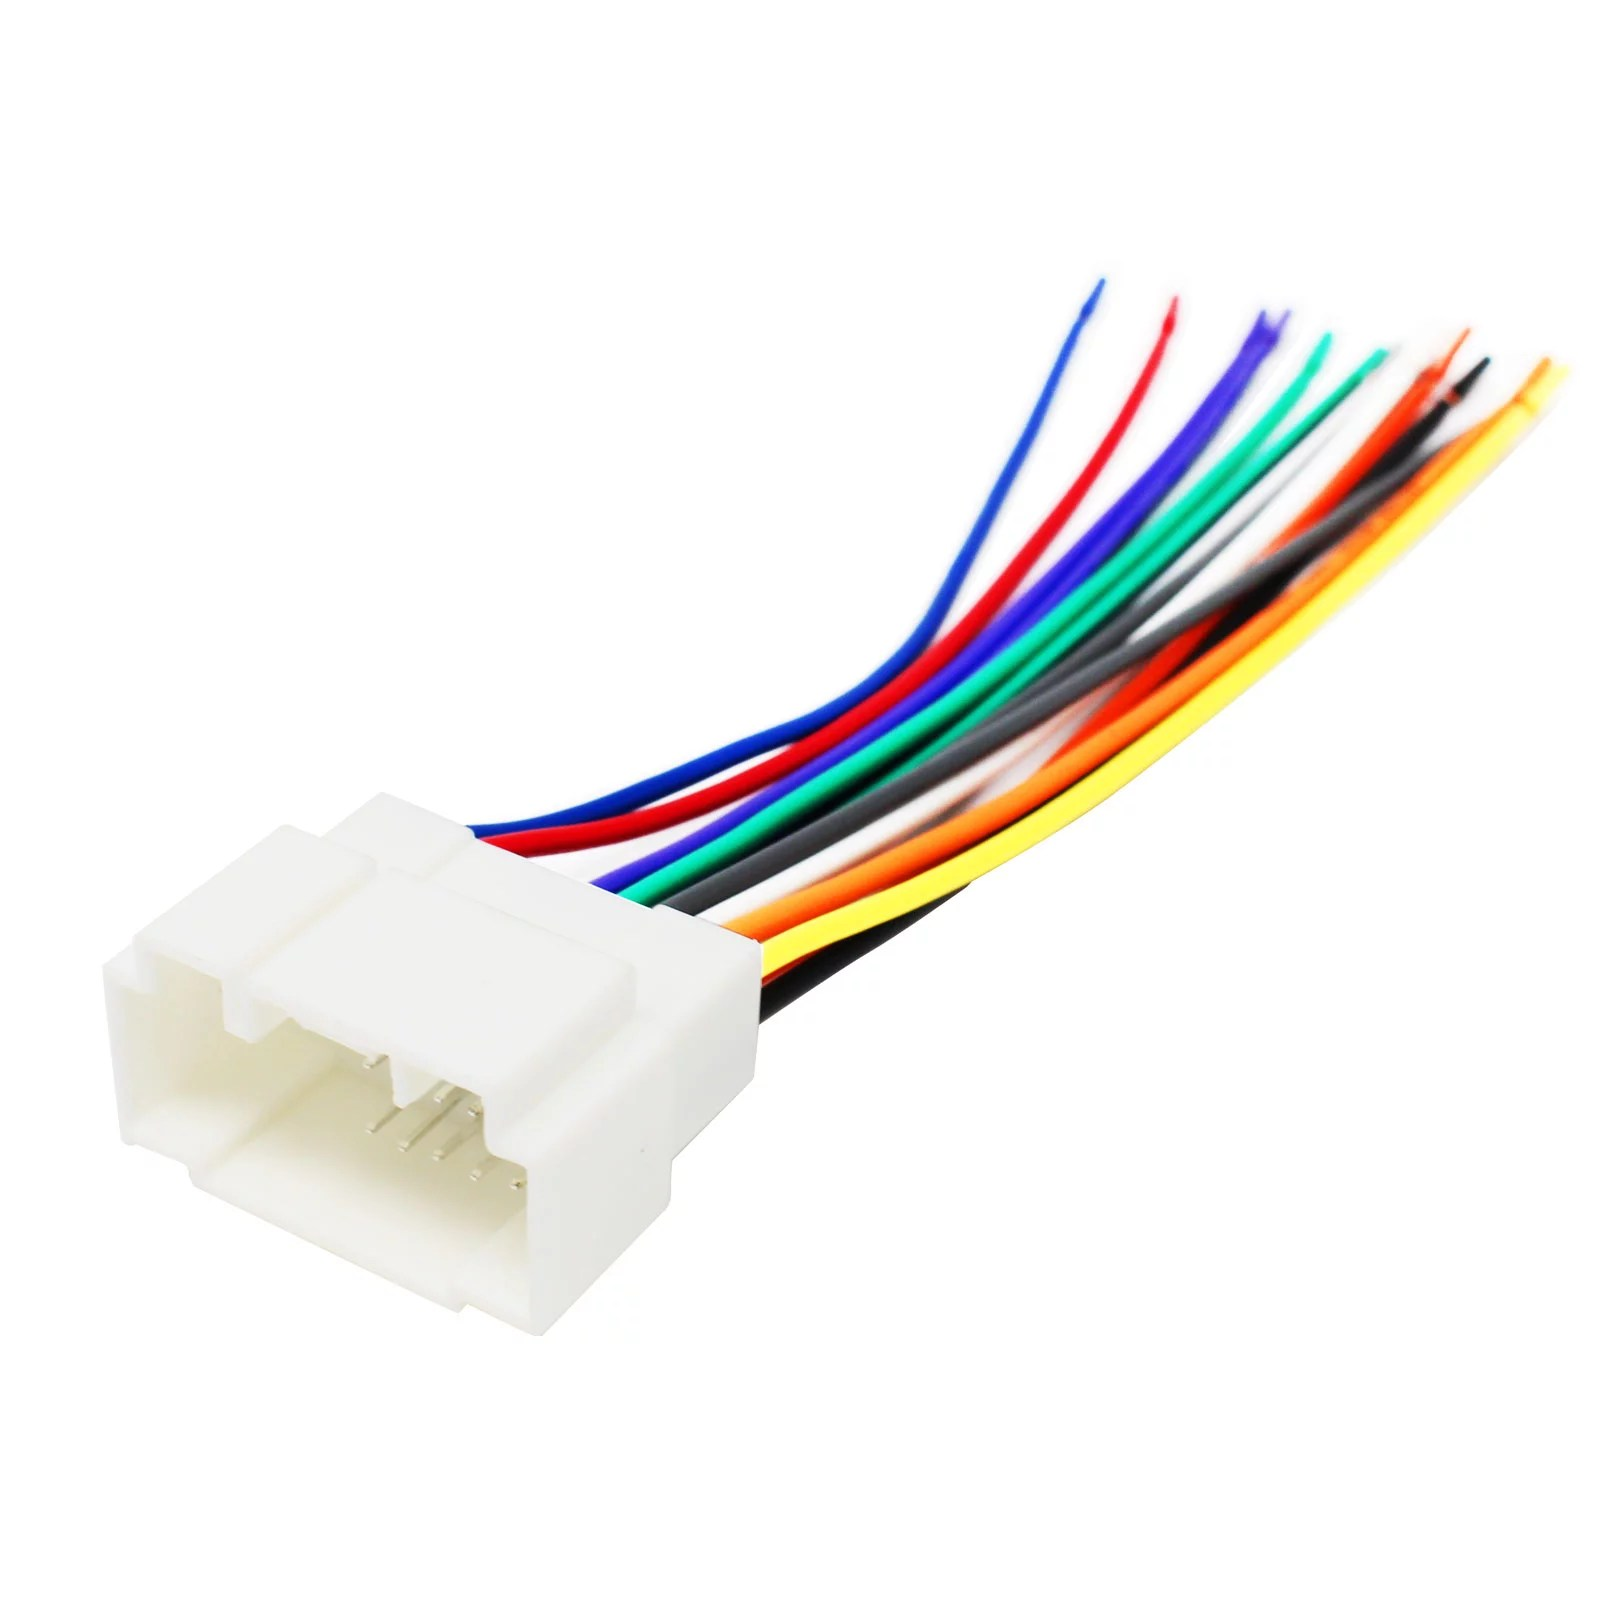 replacement radio wiring harness for 2005 honda civic lx sedan 4 honda wiring harness pins honda wiring harness [ 1600 x 1600 Pixel ]